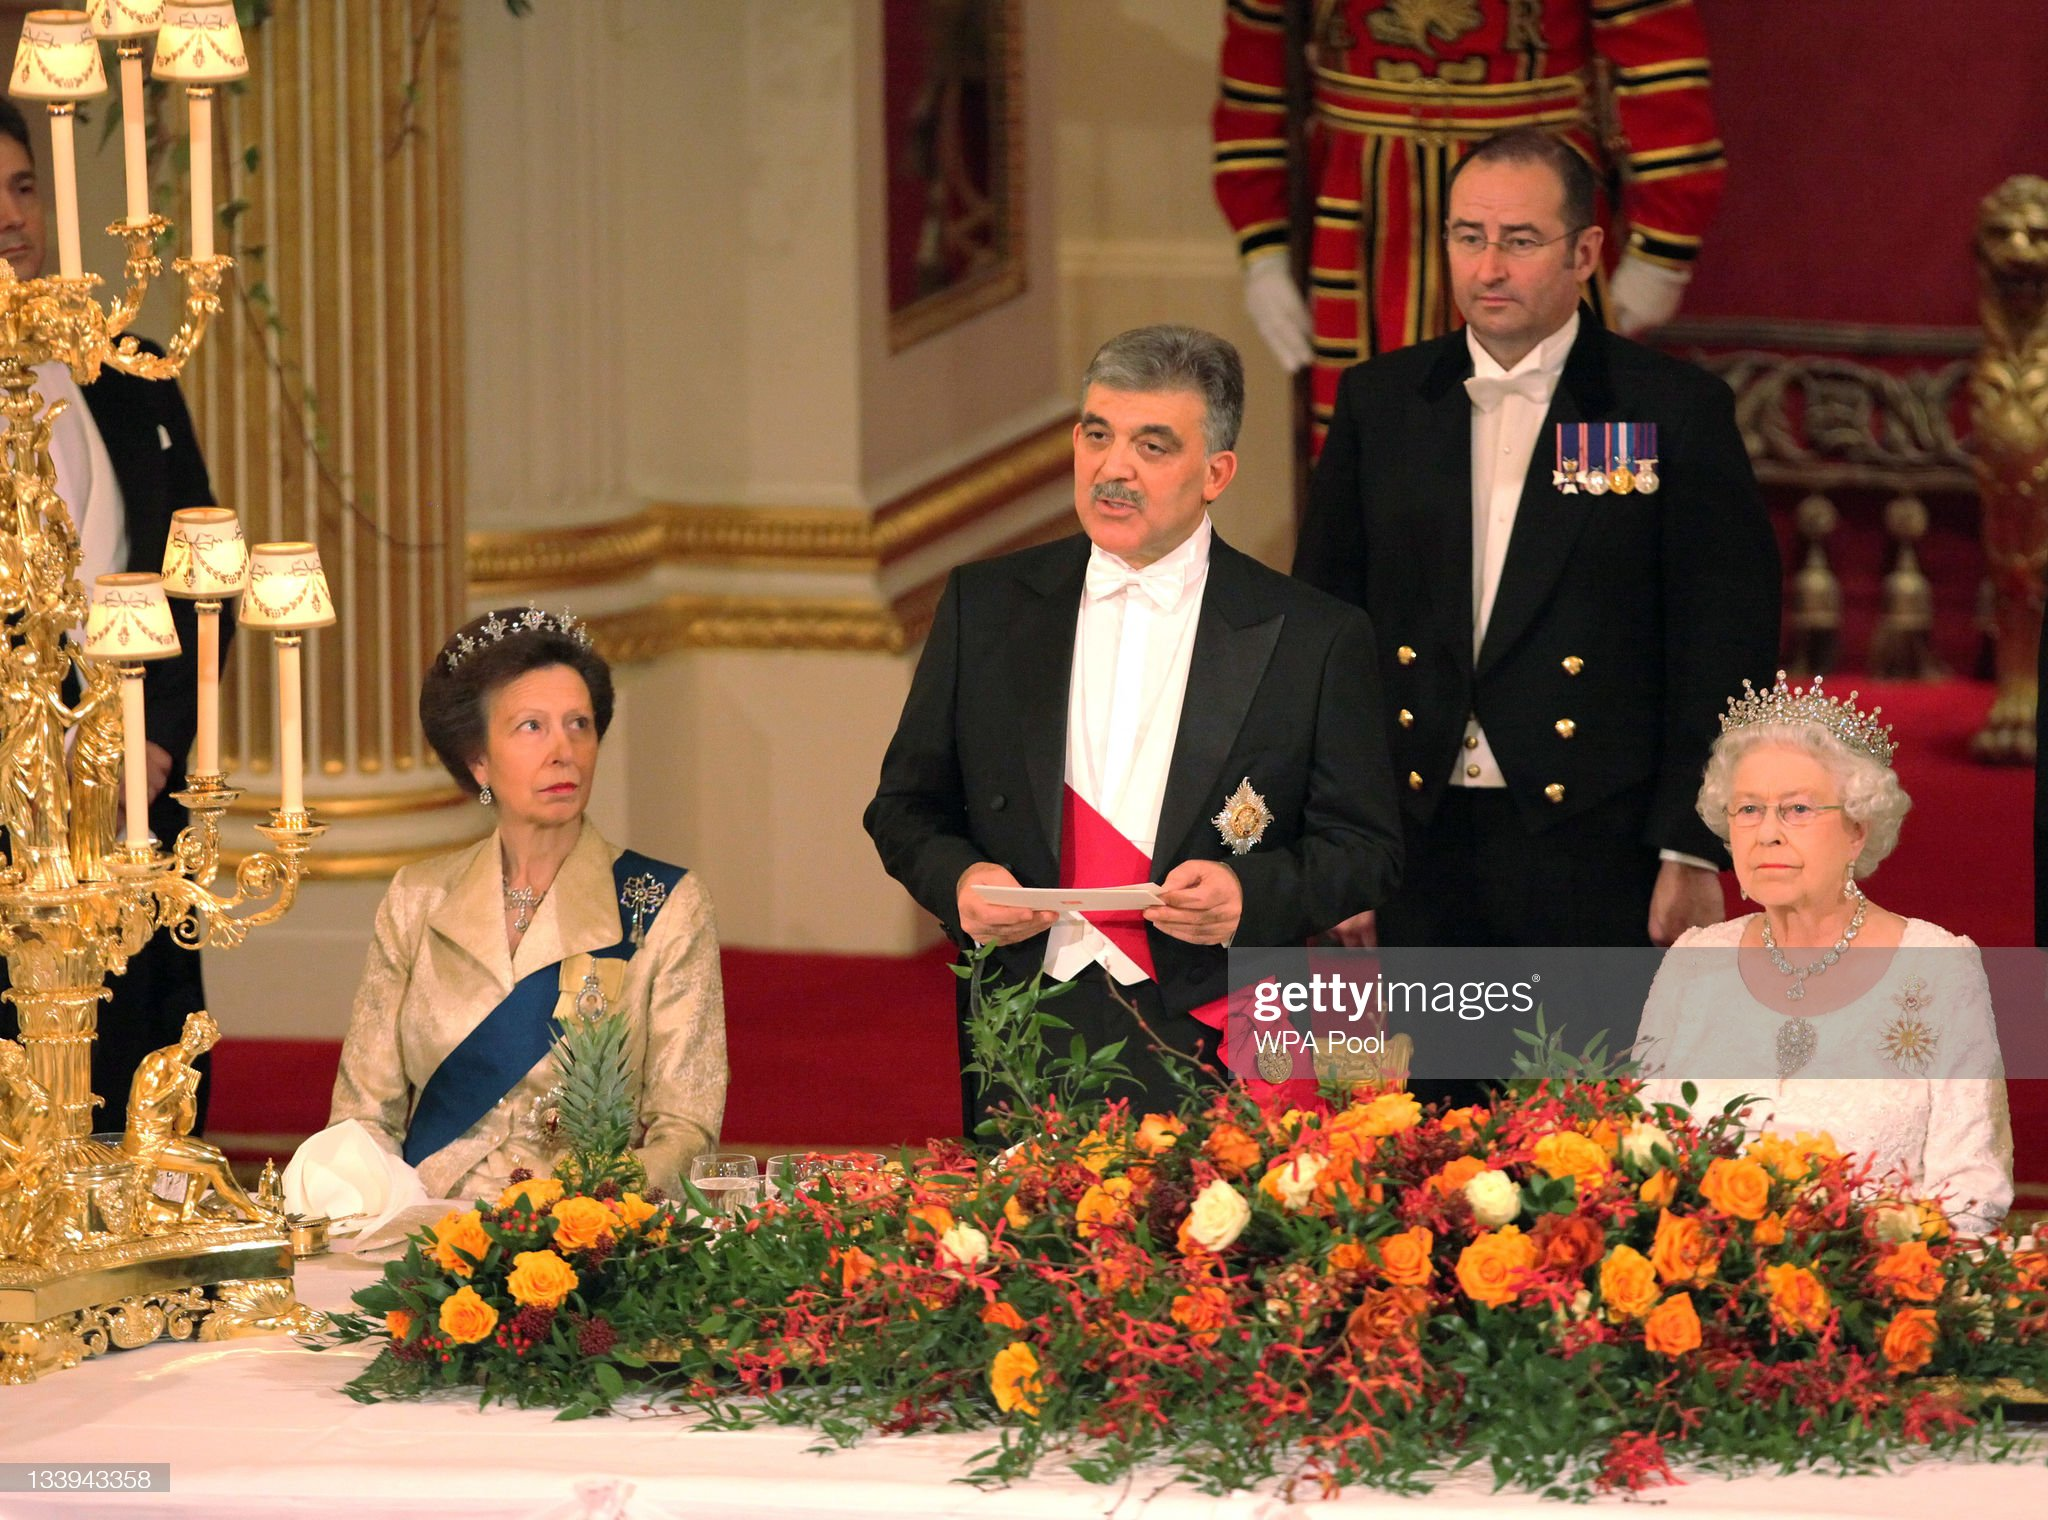 The President Of Turkey Abdullah Gul's State Visit To The UK : News Photo